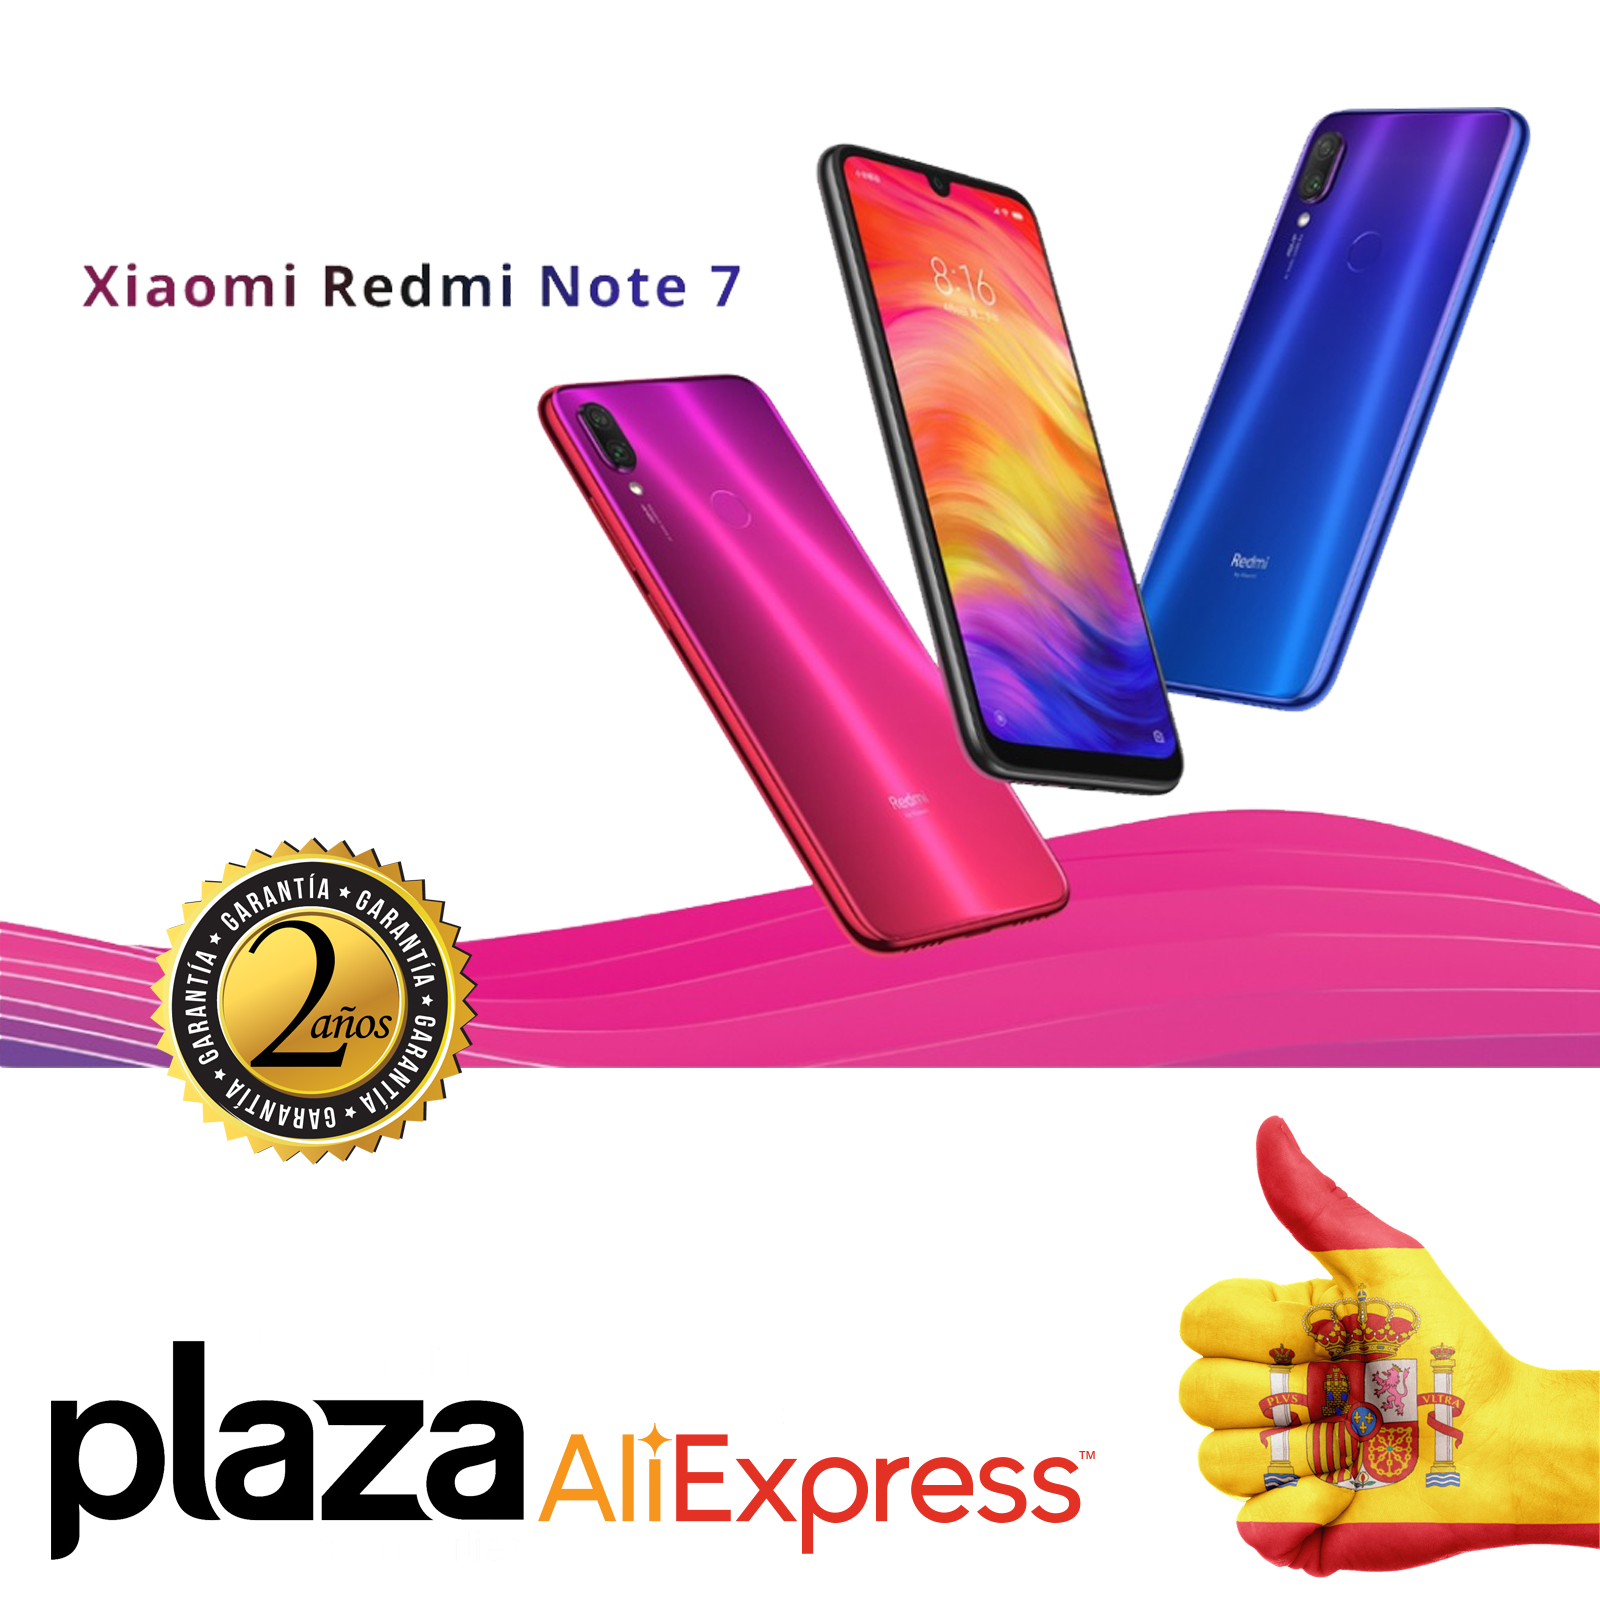 Xiao Mi Note Redmi 7 <font><b>Smartphone</b></font> (4 hard <font><b>GB</b></font>, <font><b>64</b></font> hard <font><b>GB</b></font> ROM, phone mobile, free, new, cheap, 4000mAh battery, camera 48MP) [Global Version] image